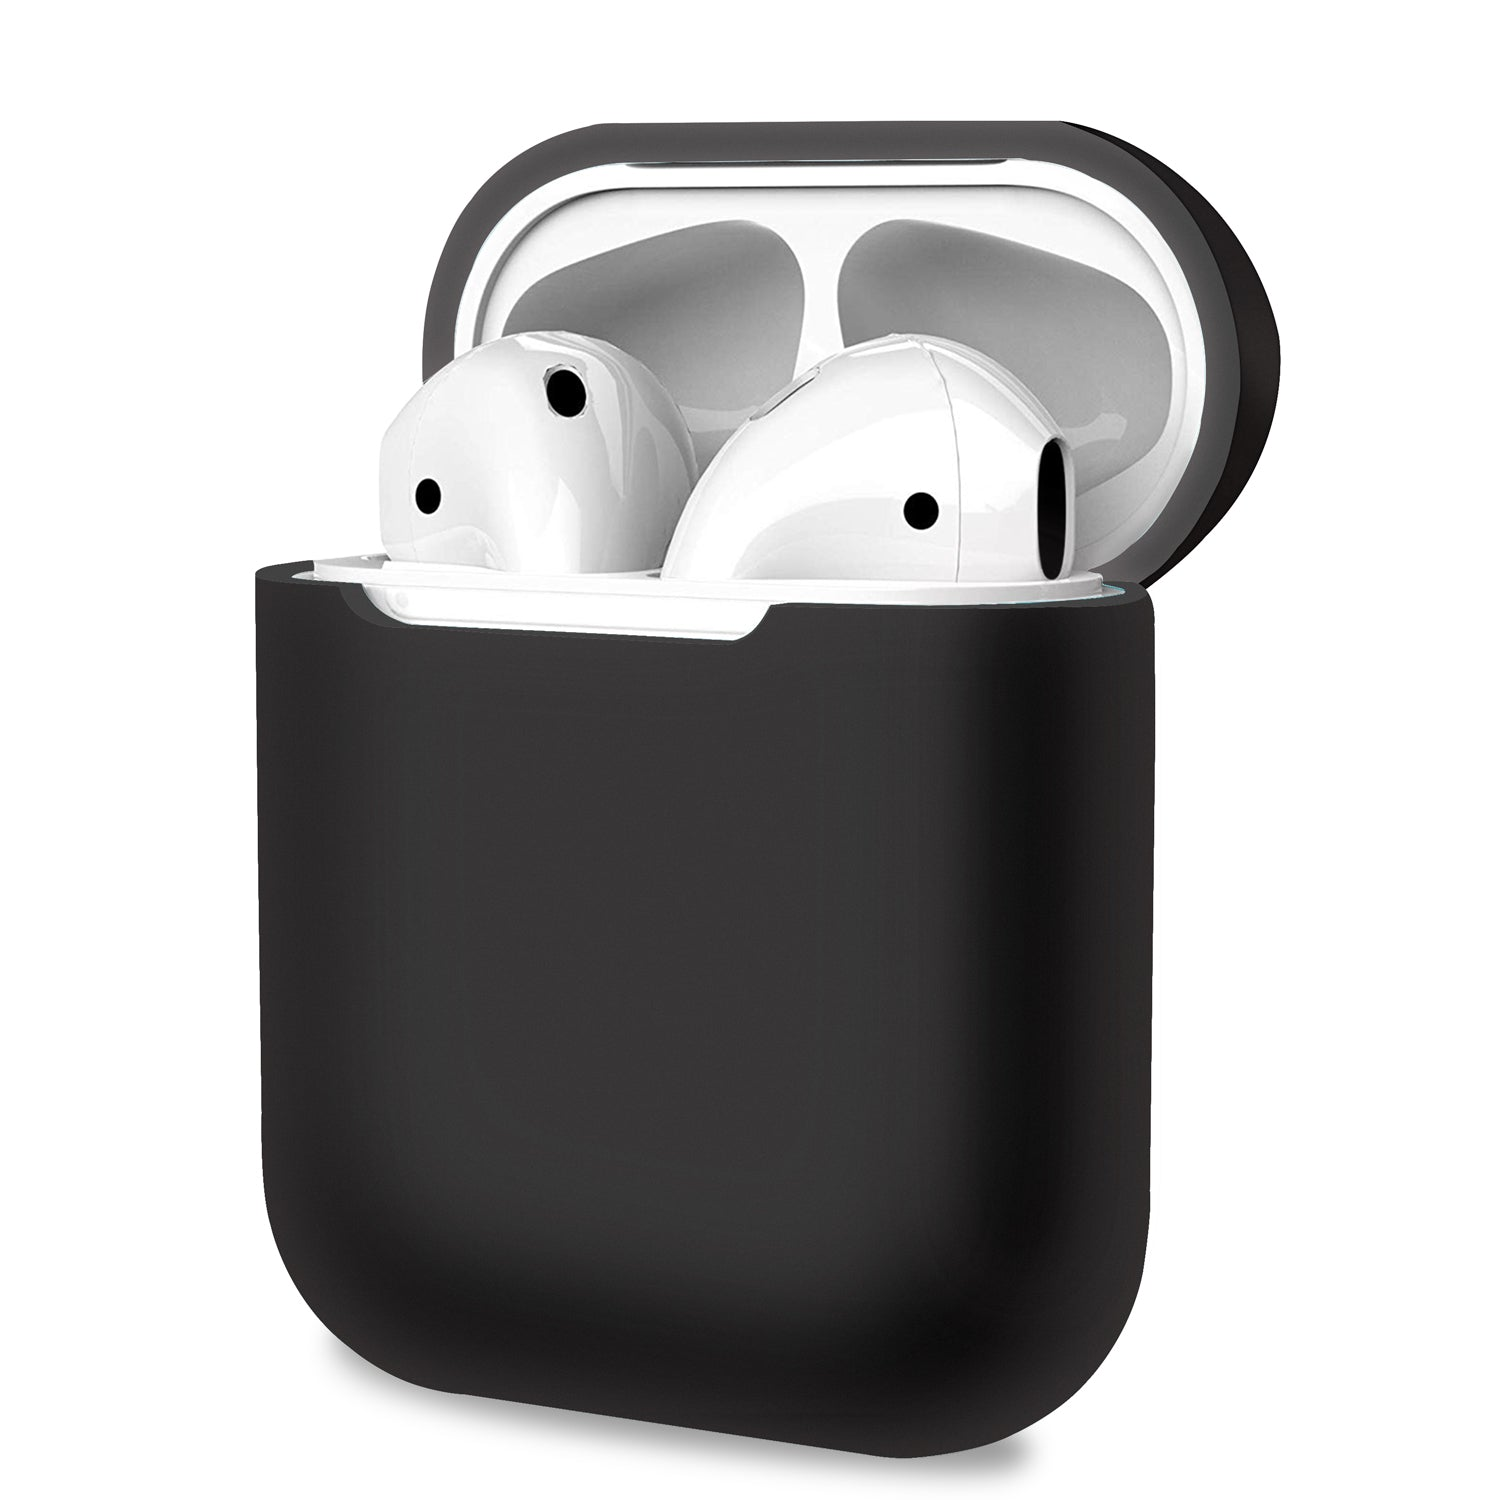 Black AirPods 1 2 Case Cover Skin Earphone Charge Silicone Case, Audio Accessories by TradeNRG